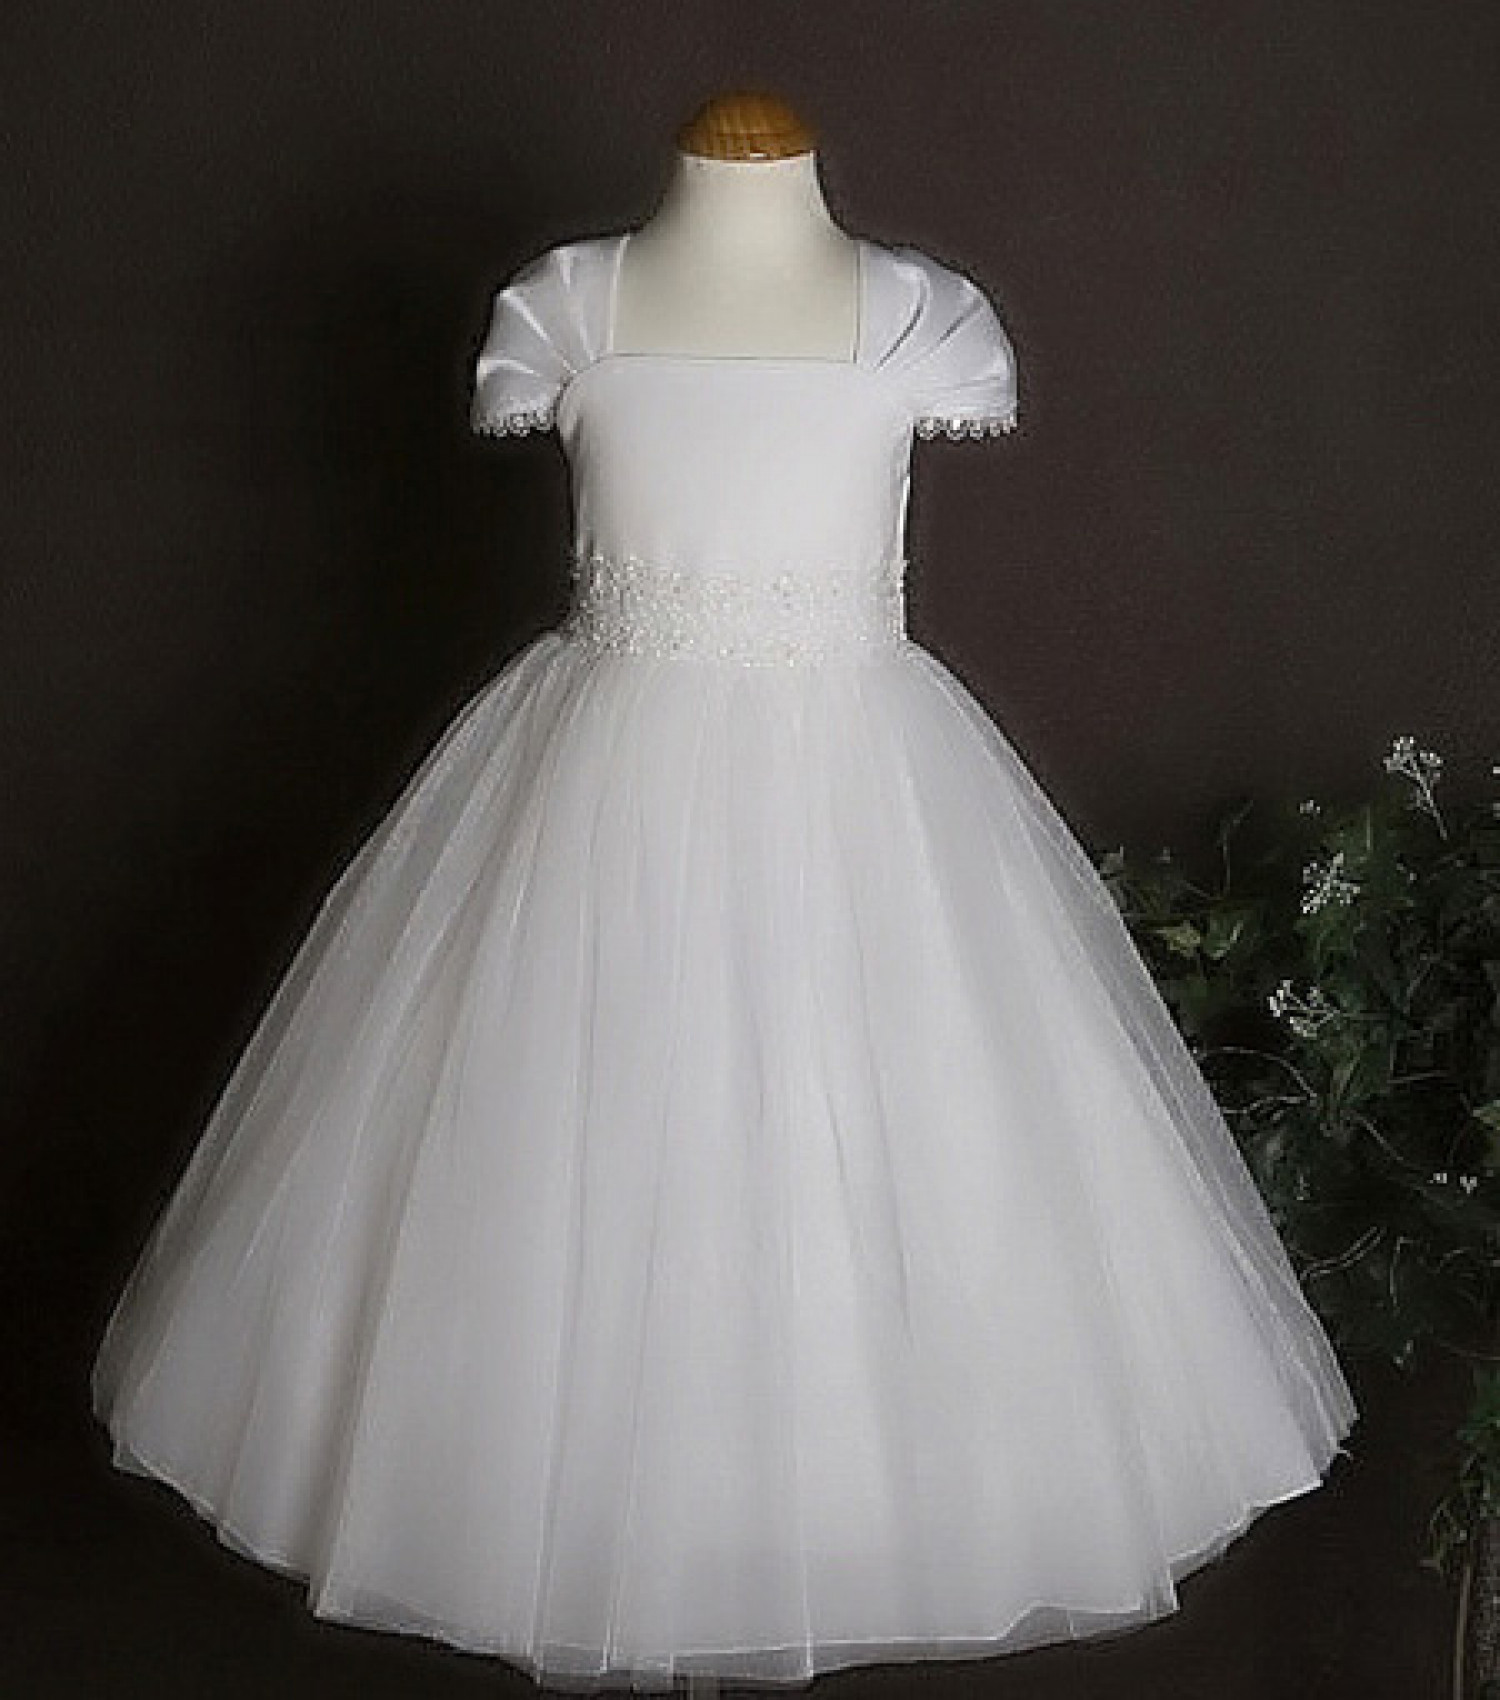 FIRST COMMUNION DRESS Infographic